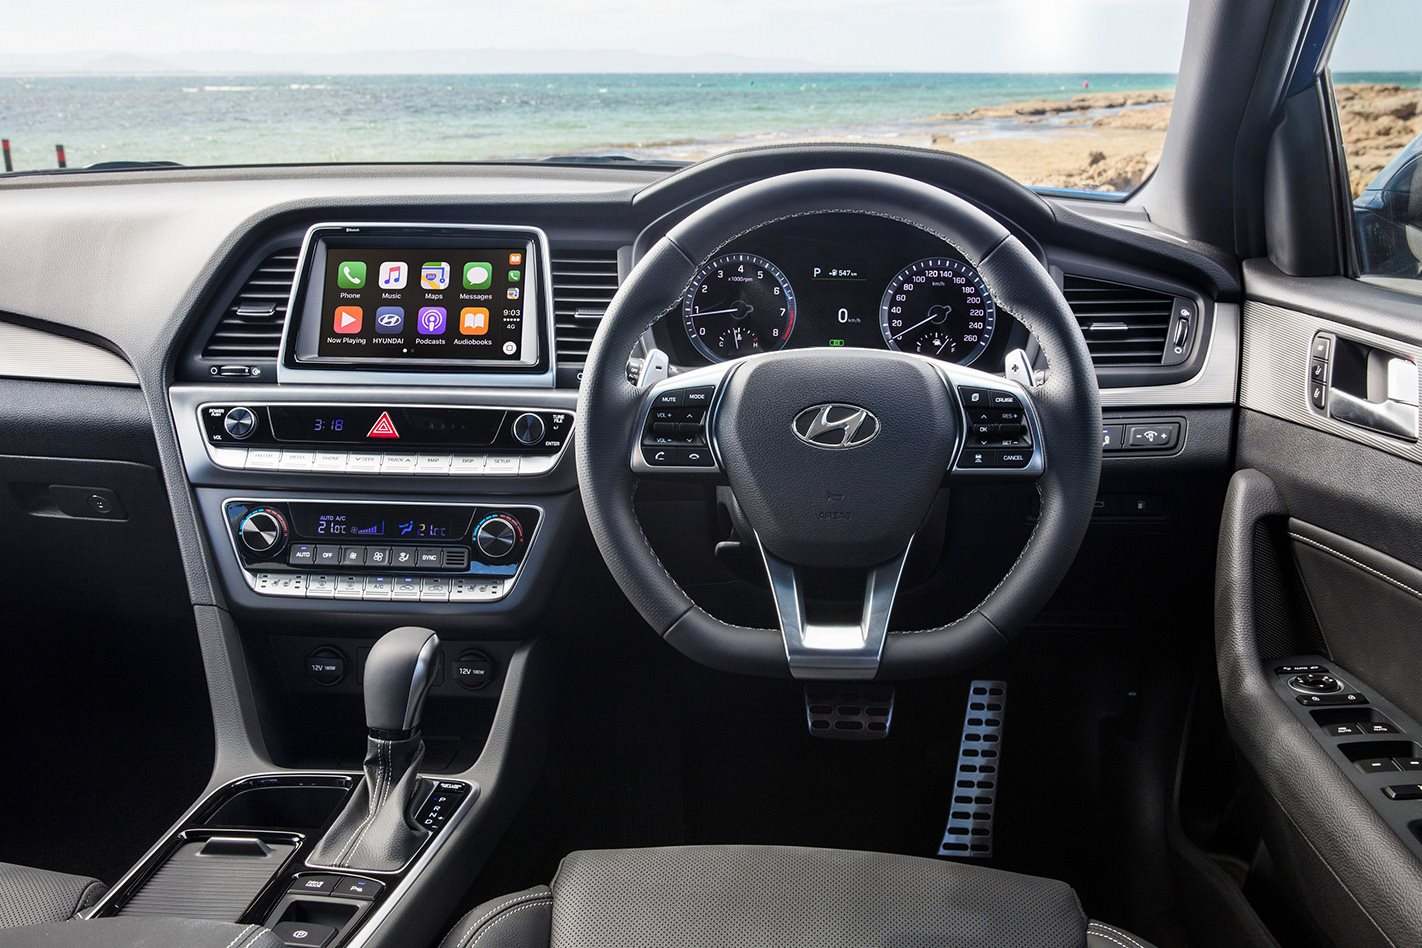 2018 Hyundai Sonata steering wheel